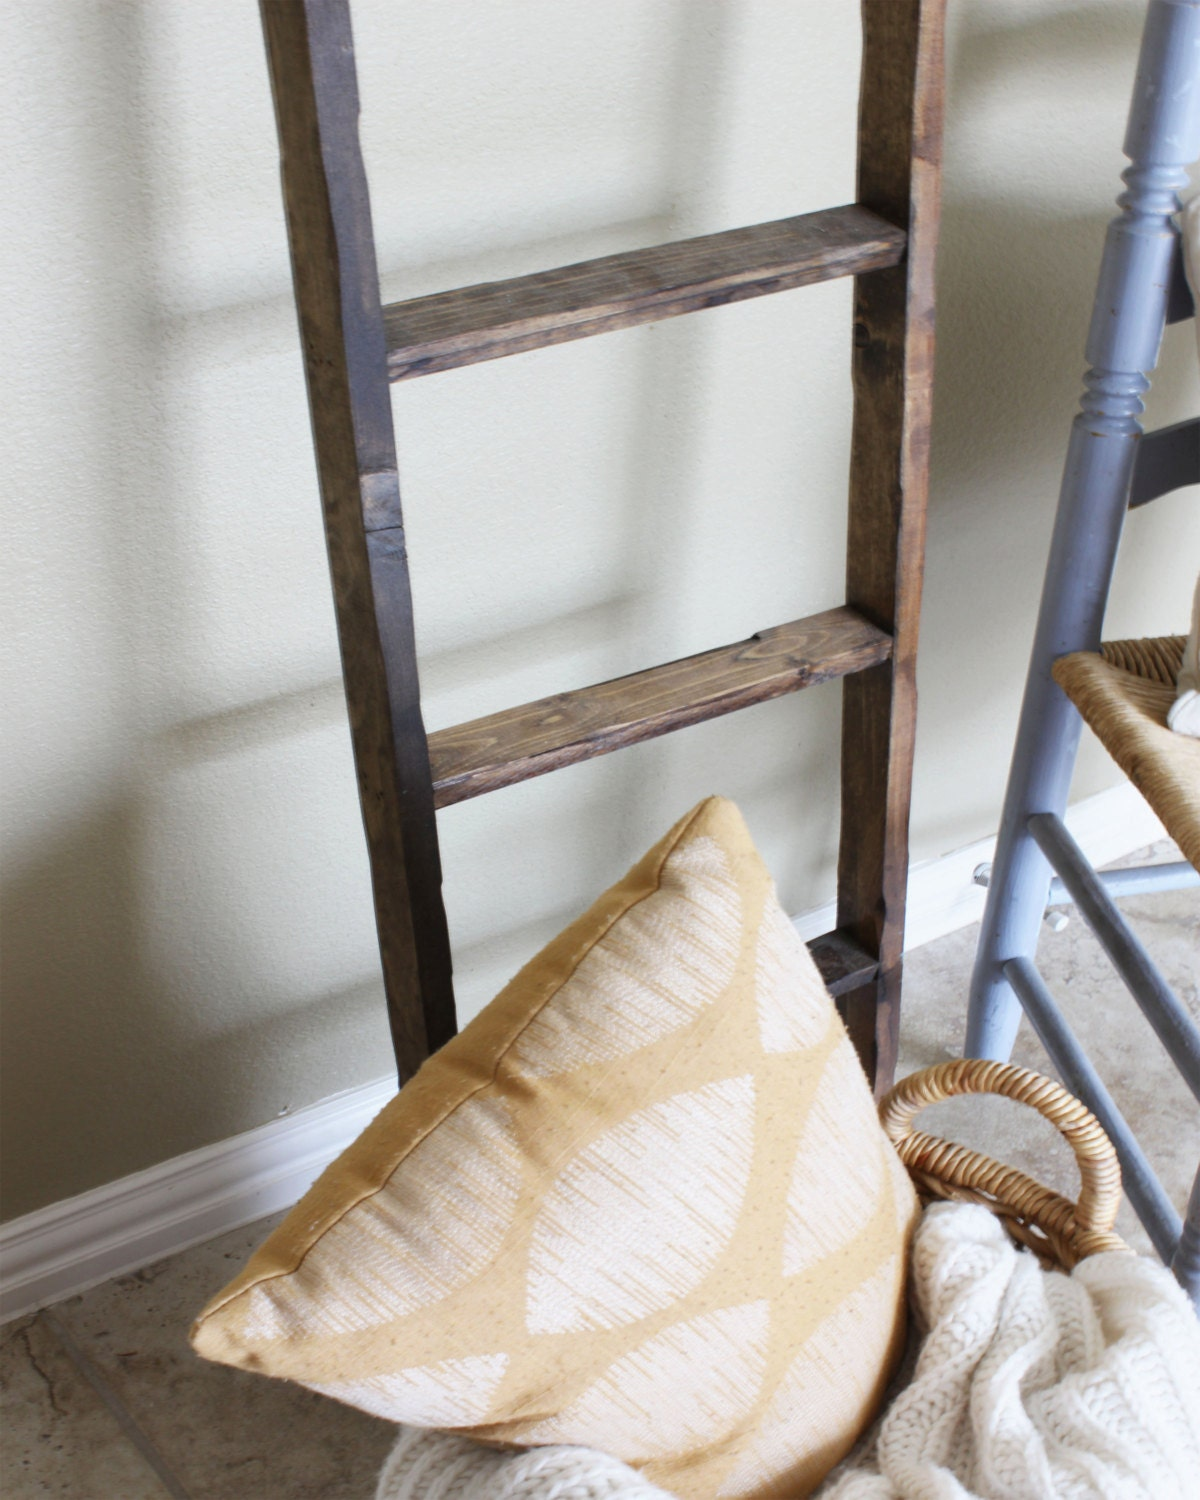 Ladder Rustic decorative ladder square rungs blanket Ladder